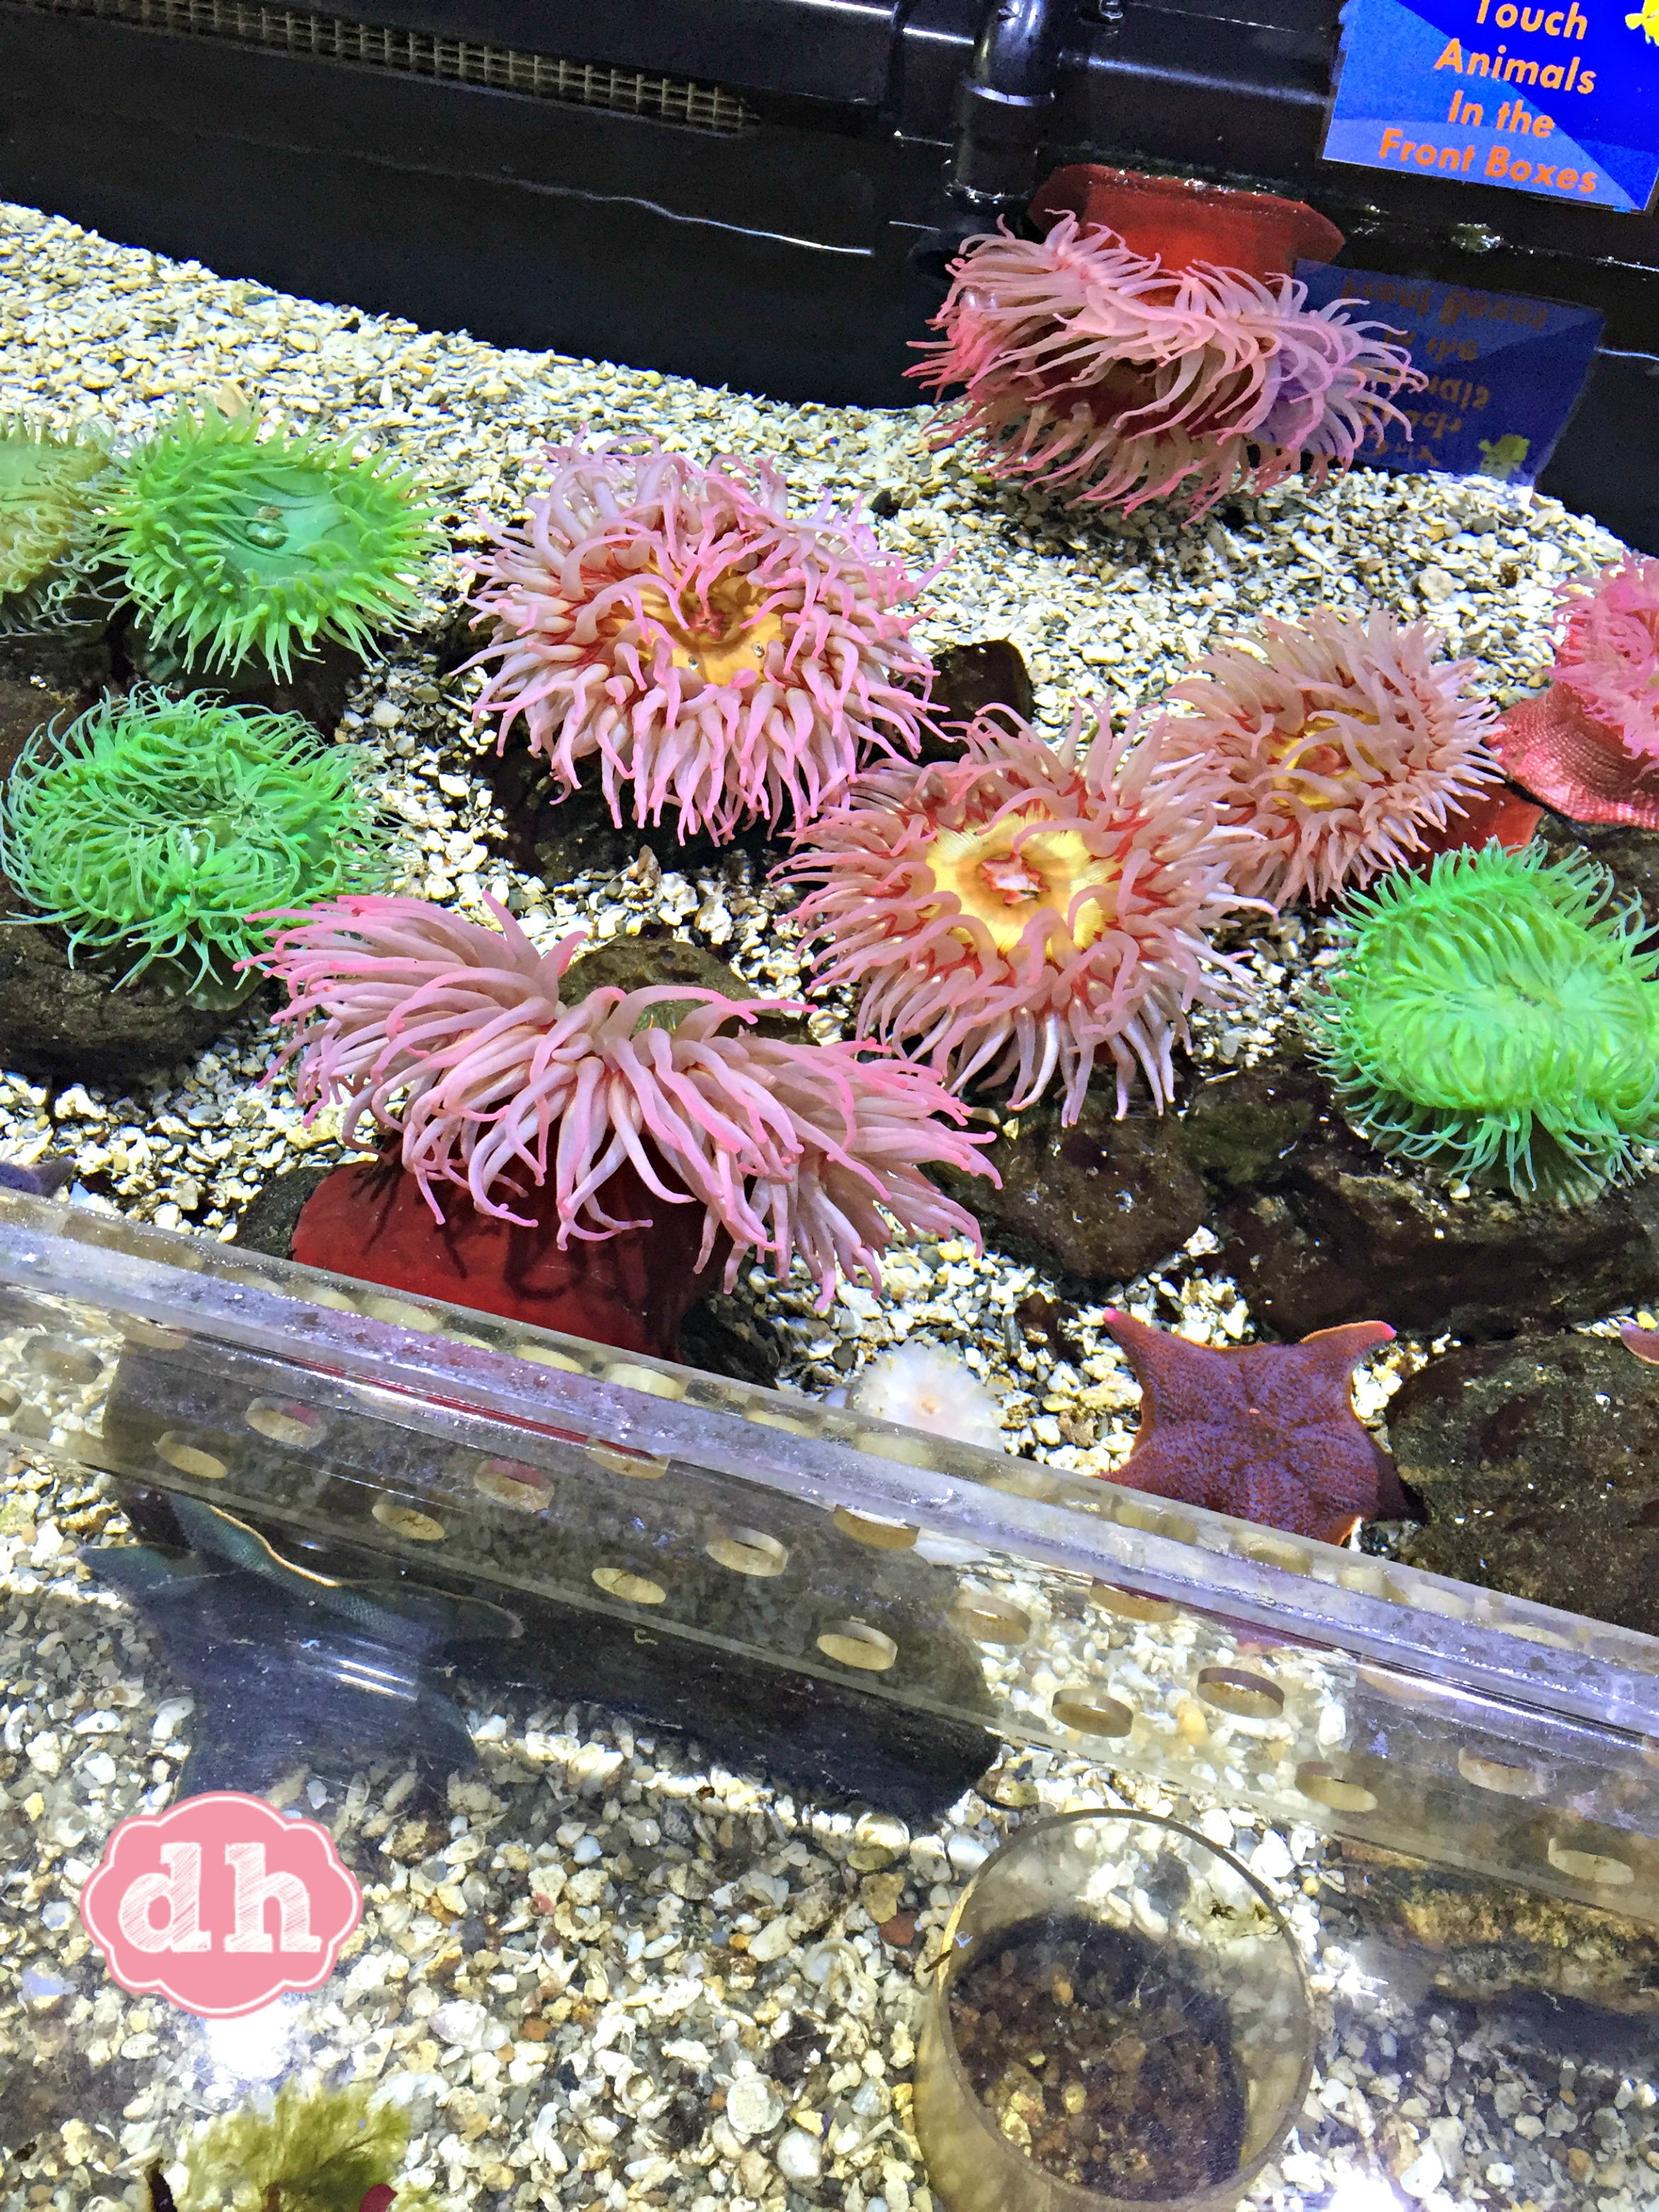 sertoma butterfly house & marine cove in sioux falls - donnahup